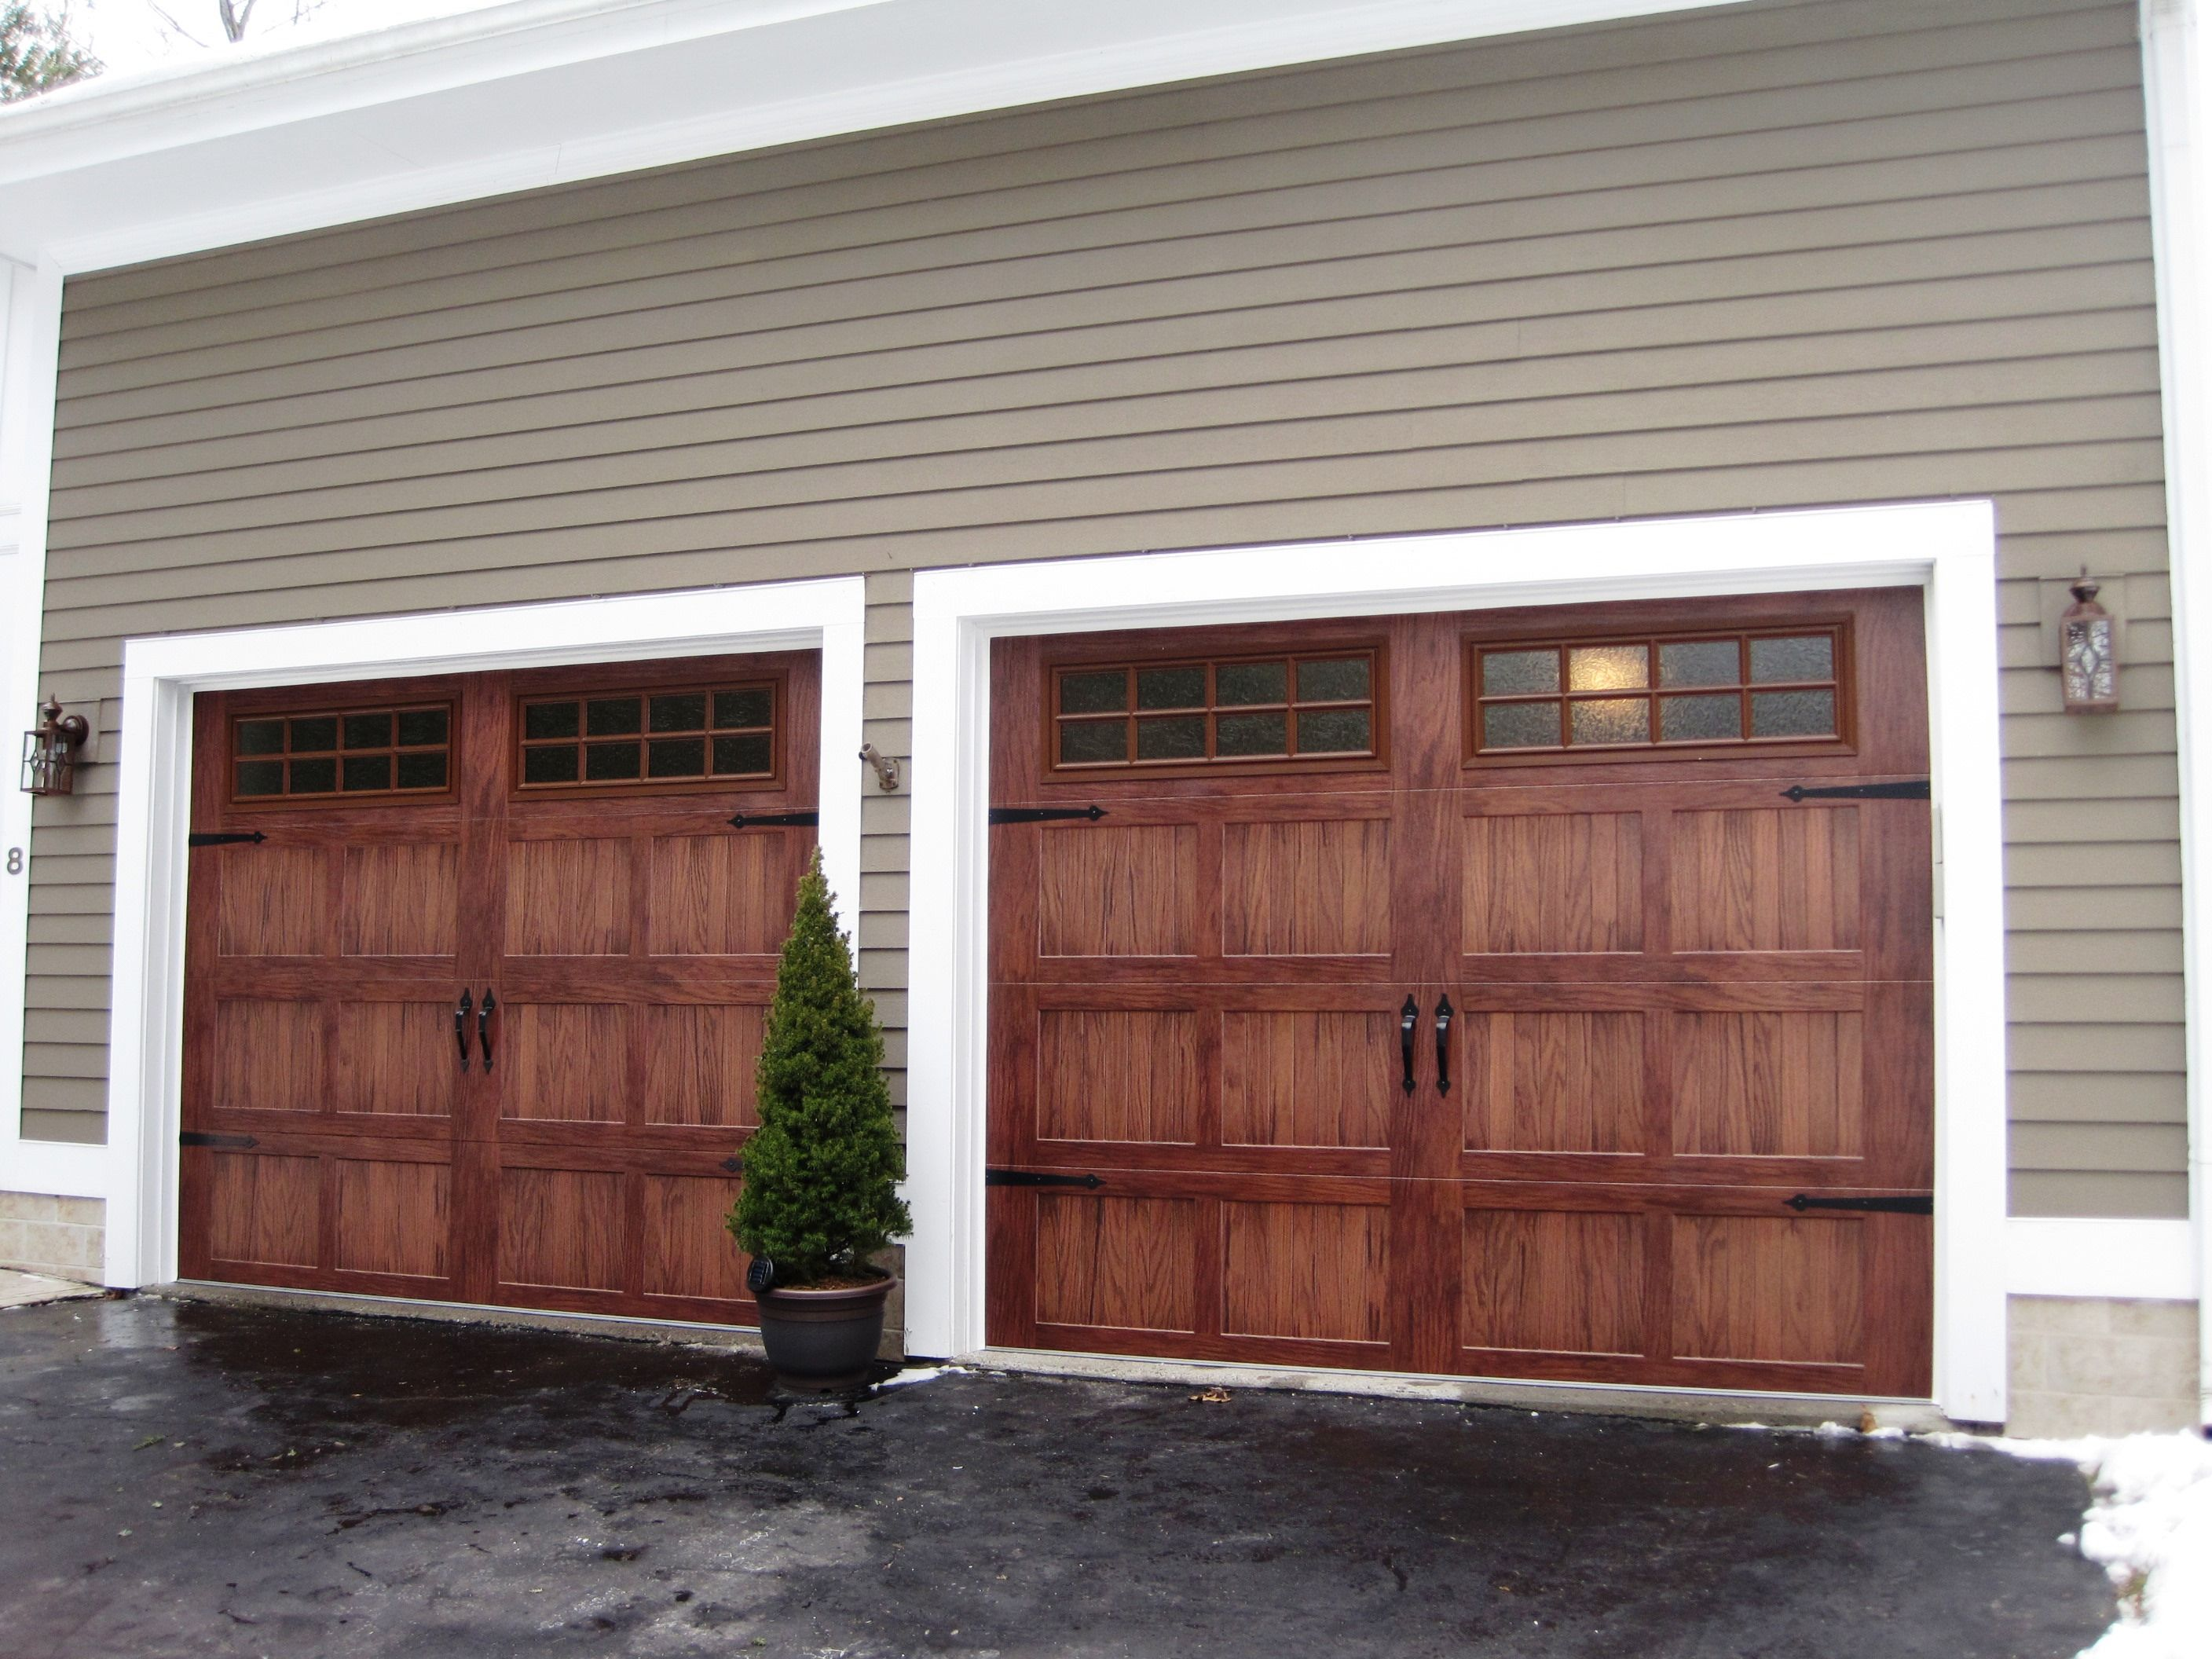 Garage Carriage House Garage Door Hinges Brown Carriage Garage Garage Door Styles Garage Doors Wooden Garage Doors